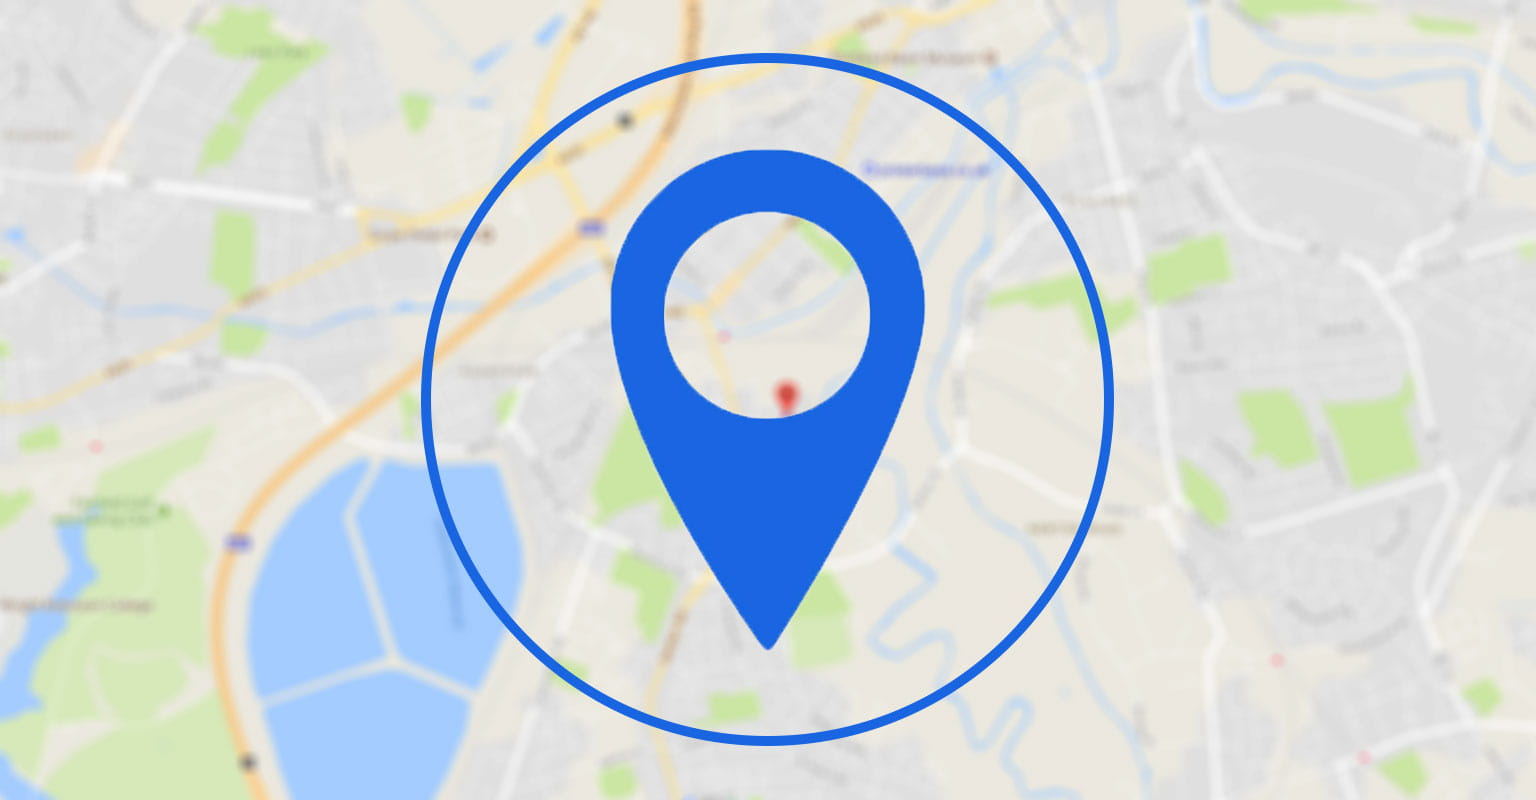 Blue location icon with map in the background to represent where to buy